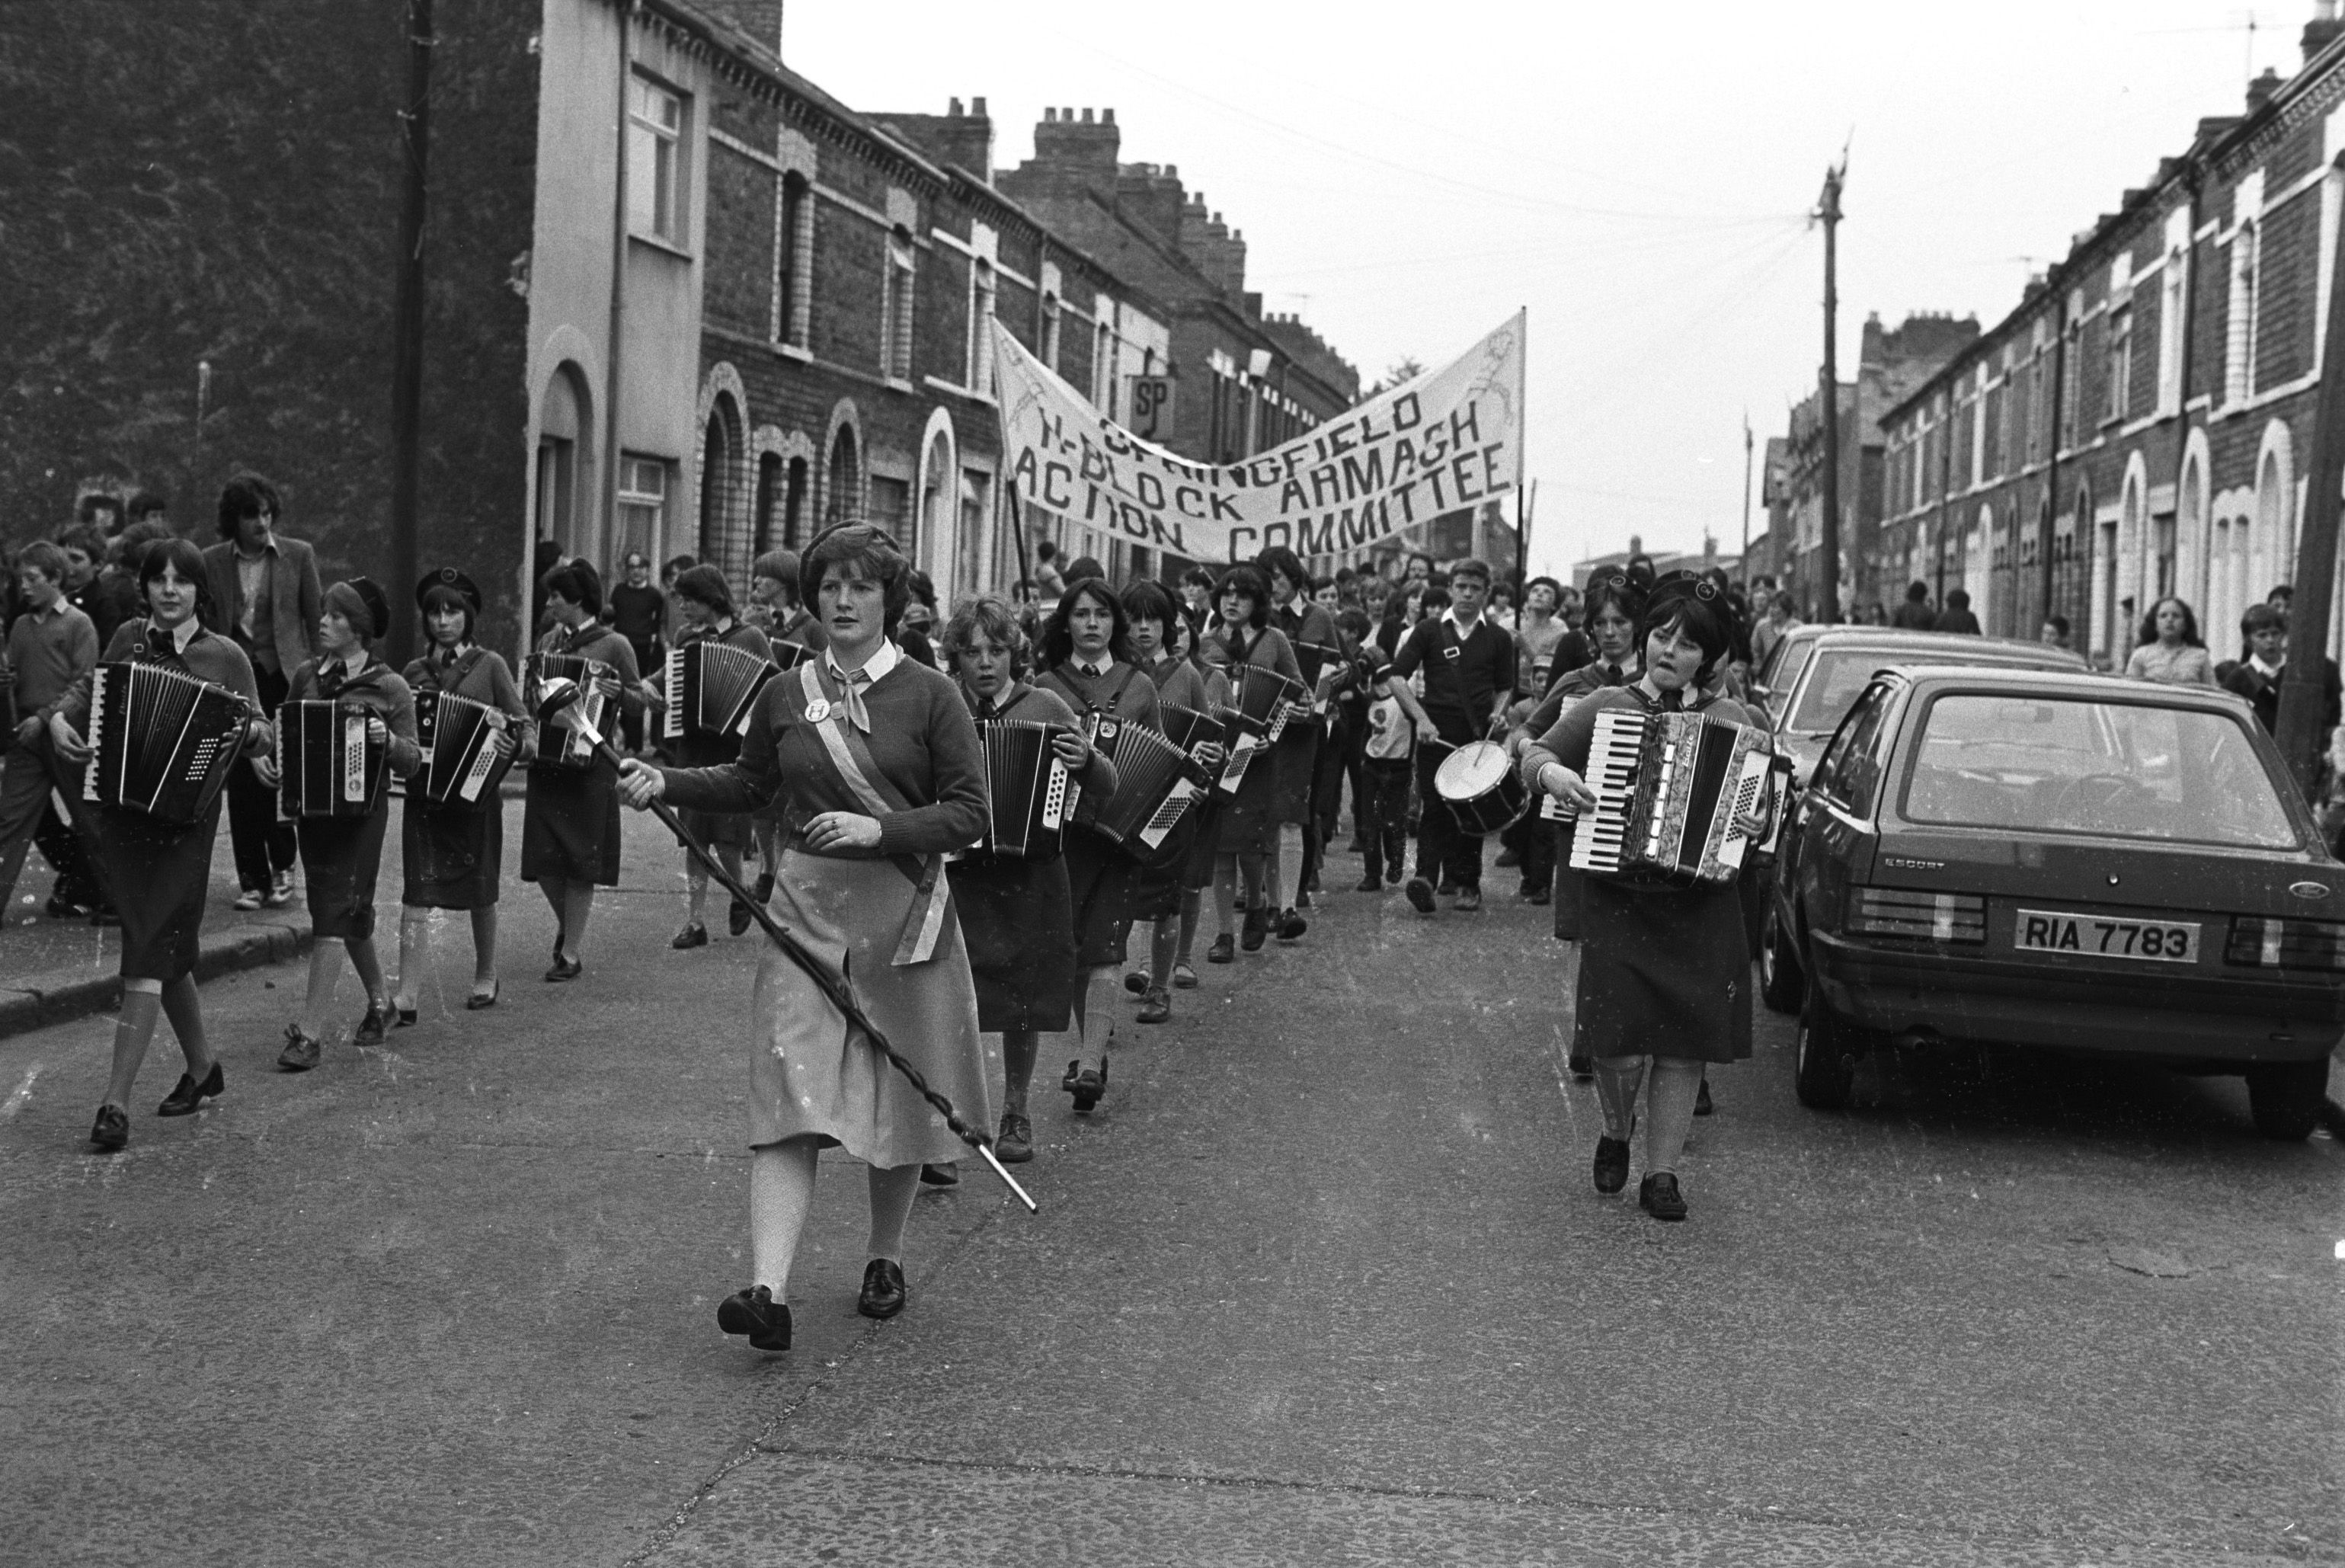 SUPPORT: An anti-H-Block/Armagh parade on the Springfield Road